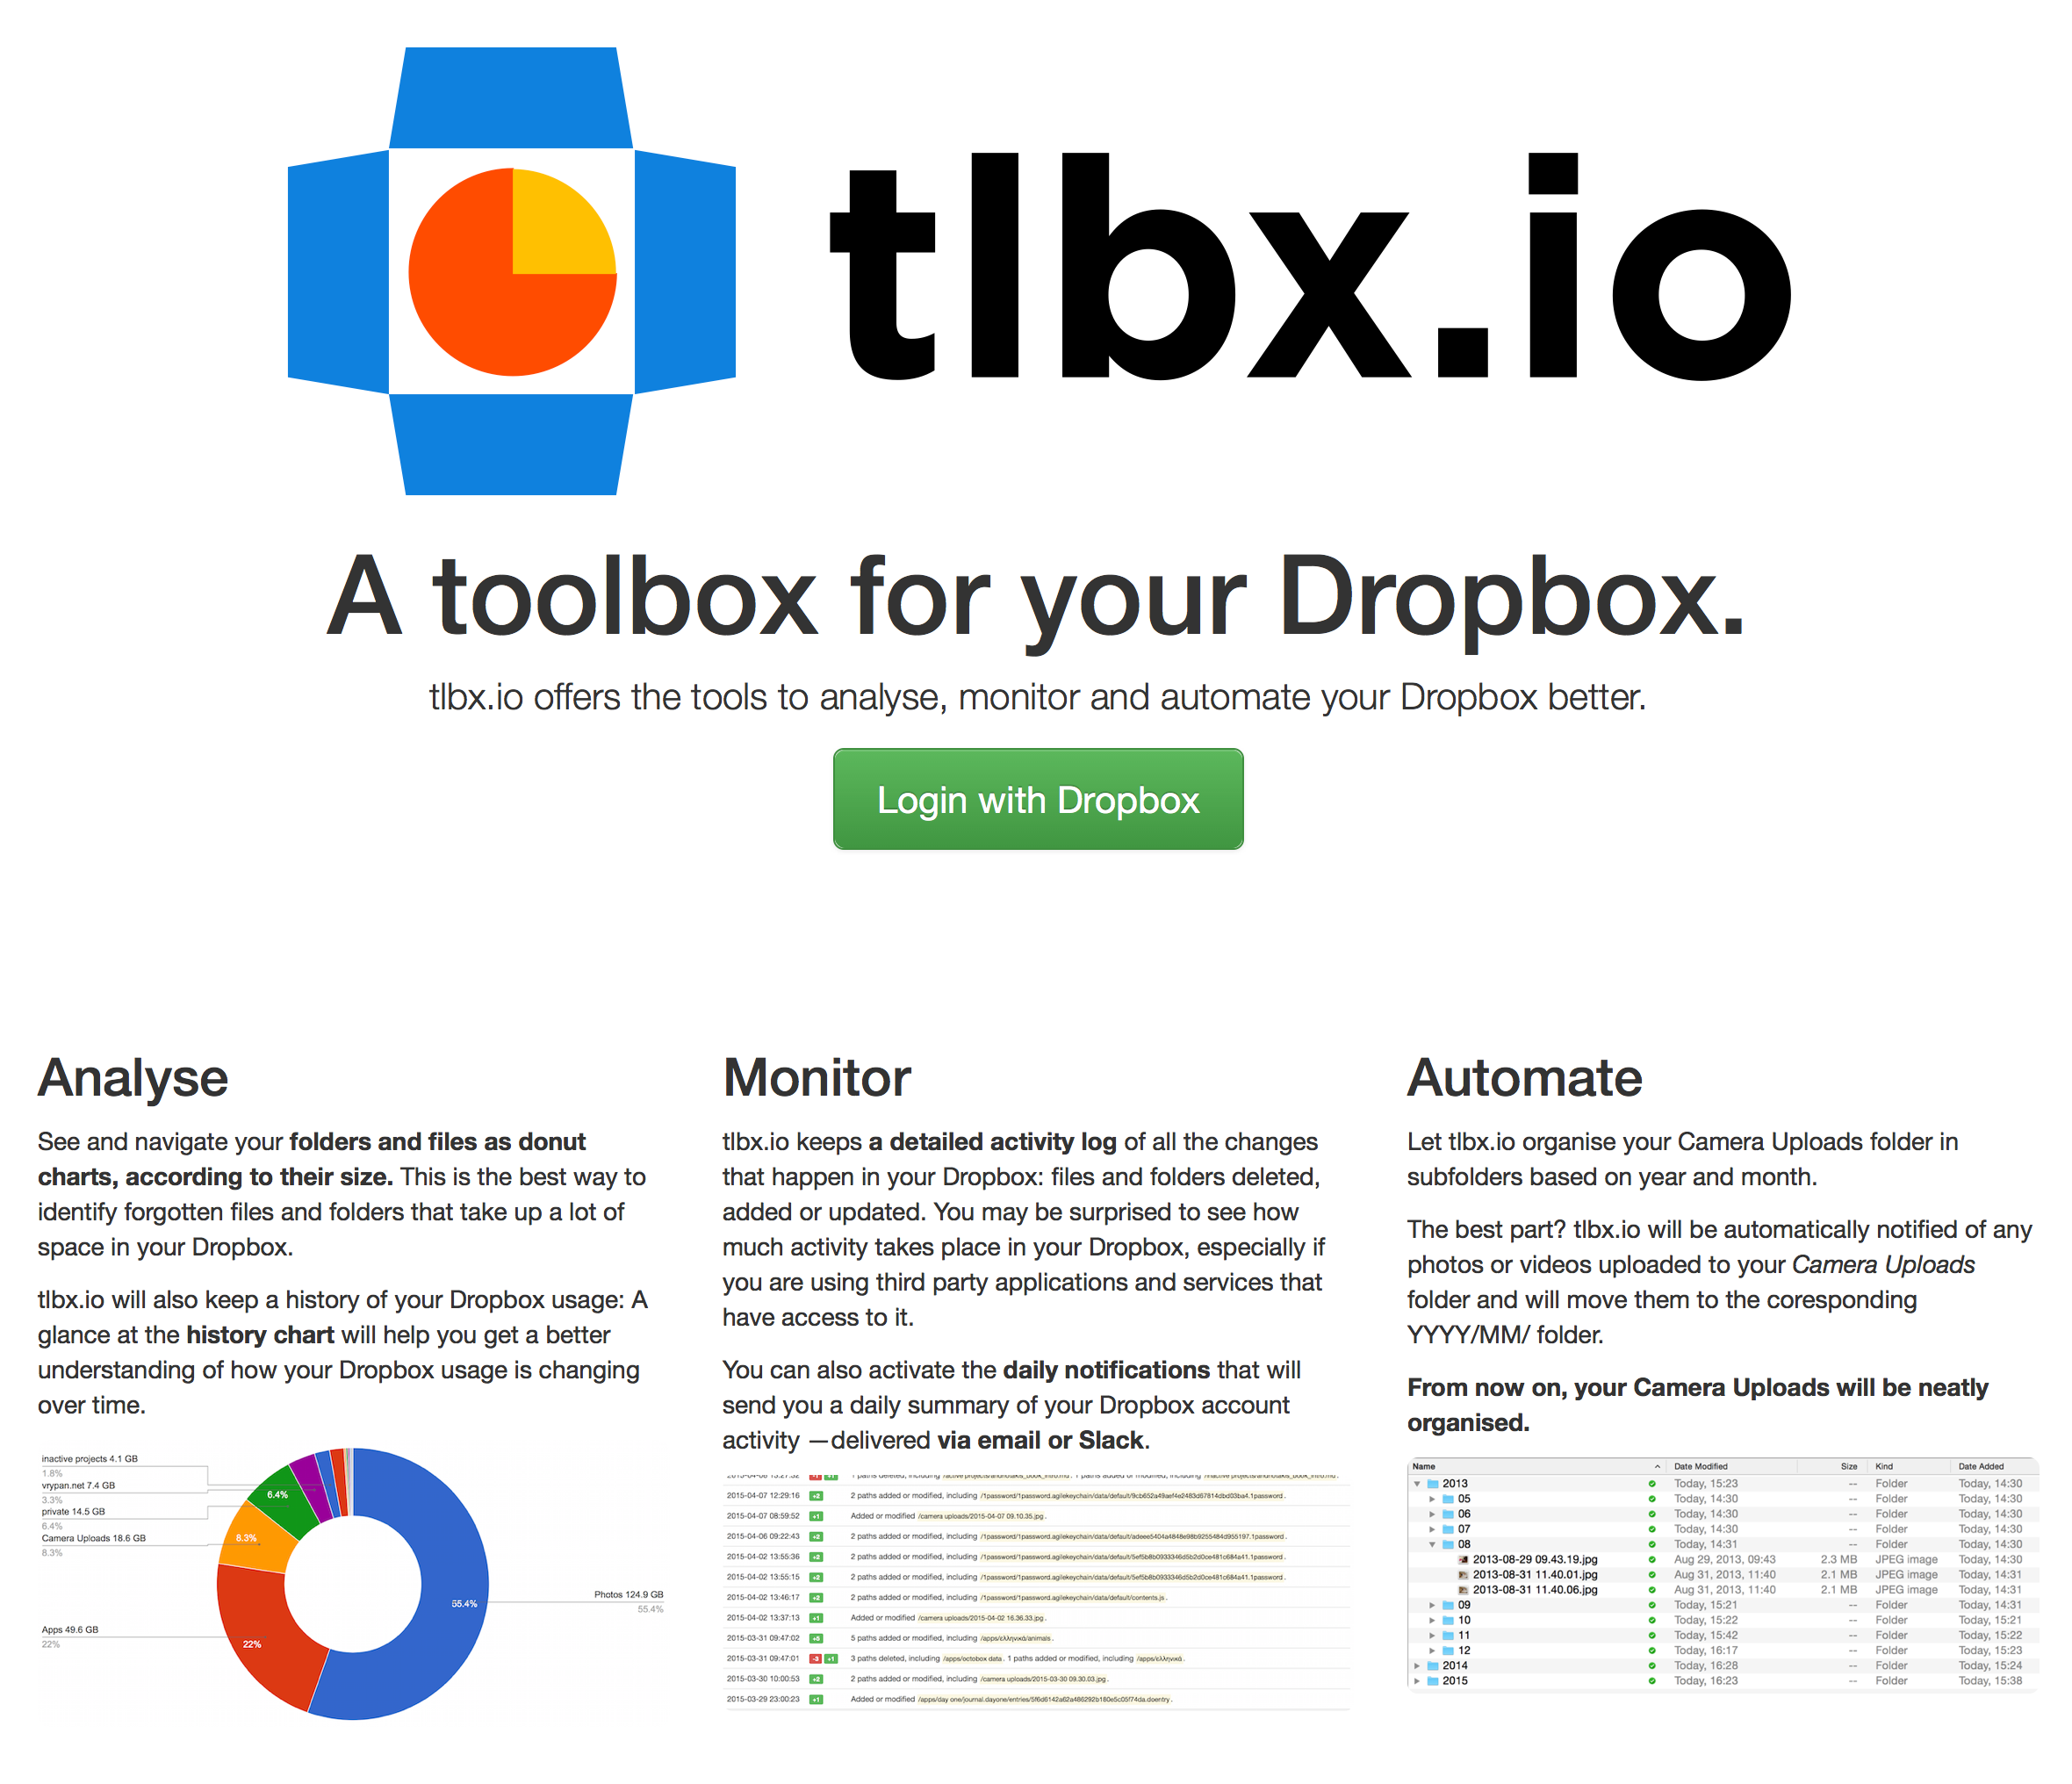 the new tlbx.io